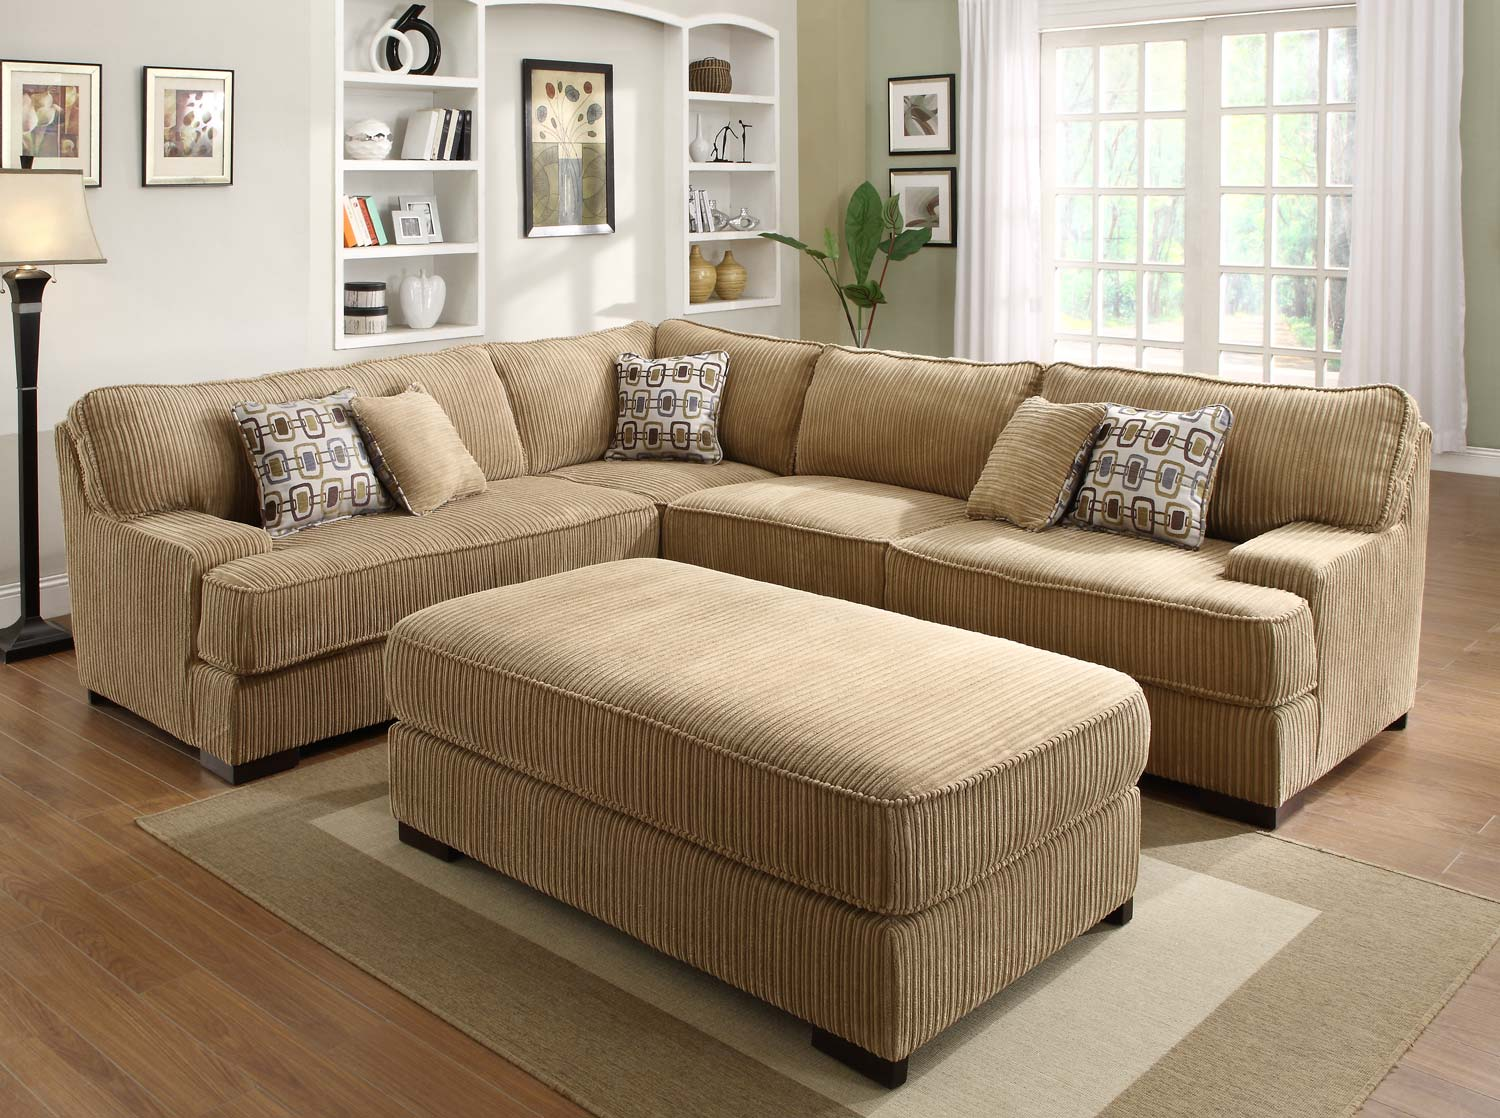 Homelegance minnis sectional sofa set brown u9759 sect for Sectional furniture